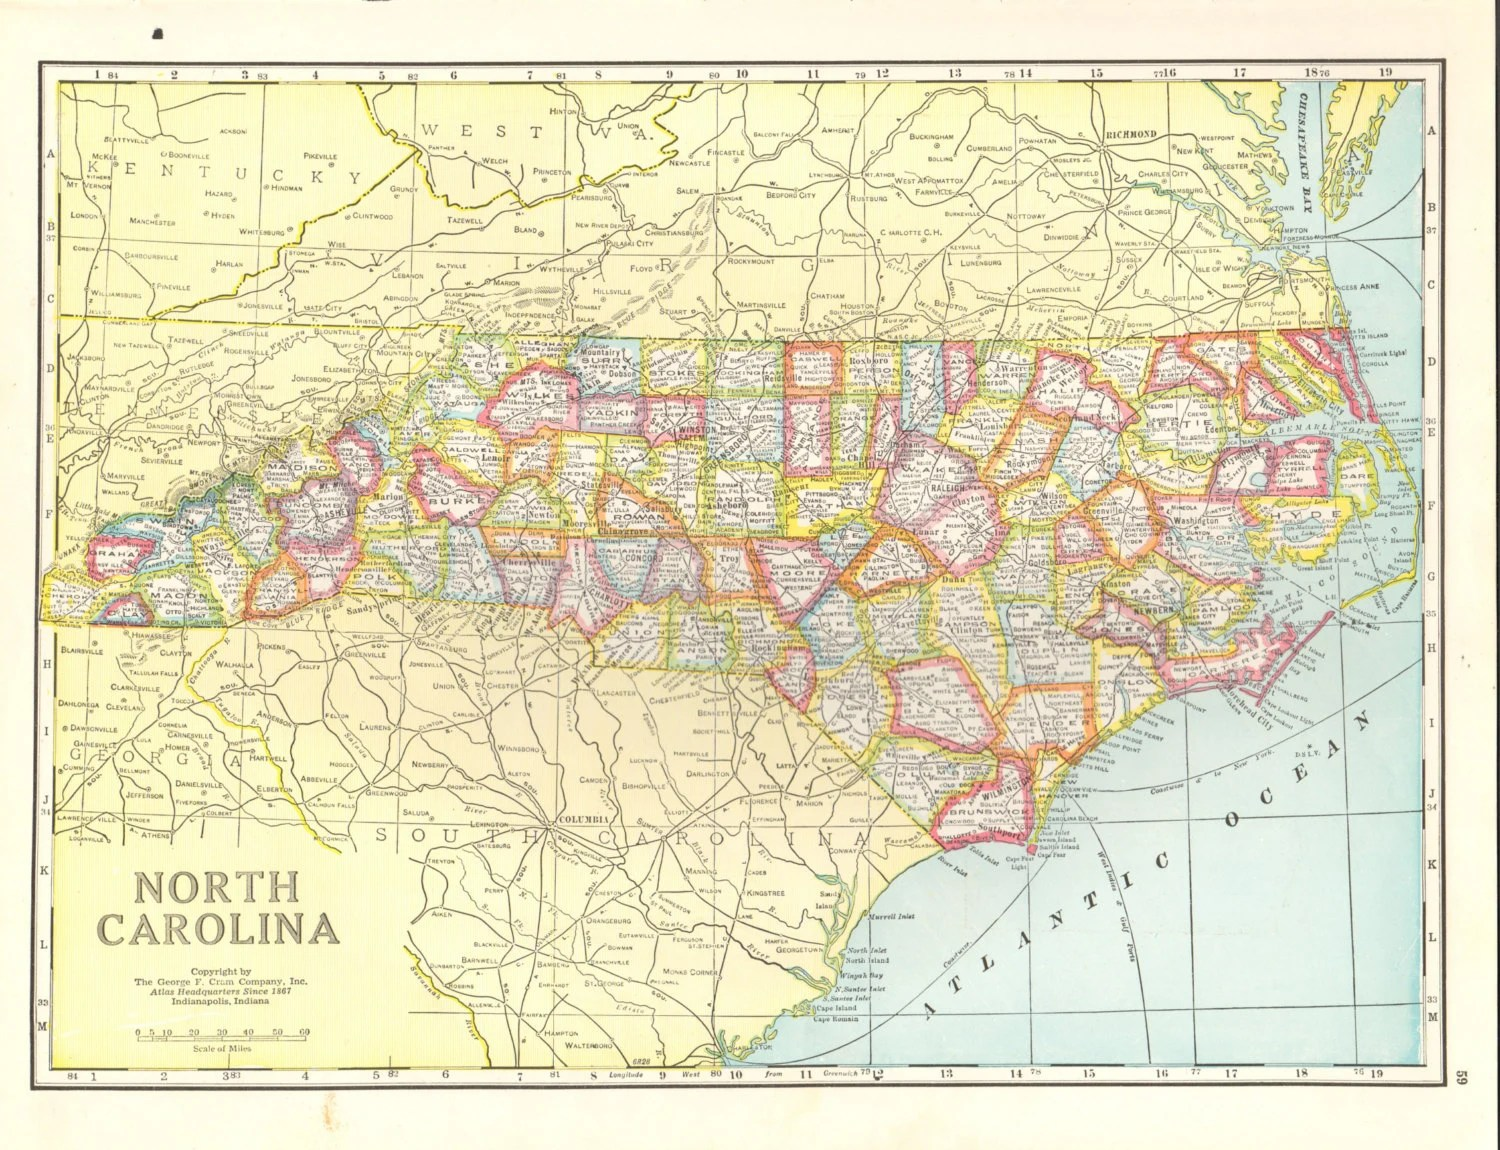 Vintage Map Of North Carolina 15x11 5 Inches Large Bookplate